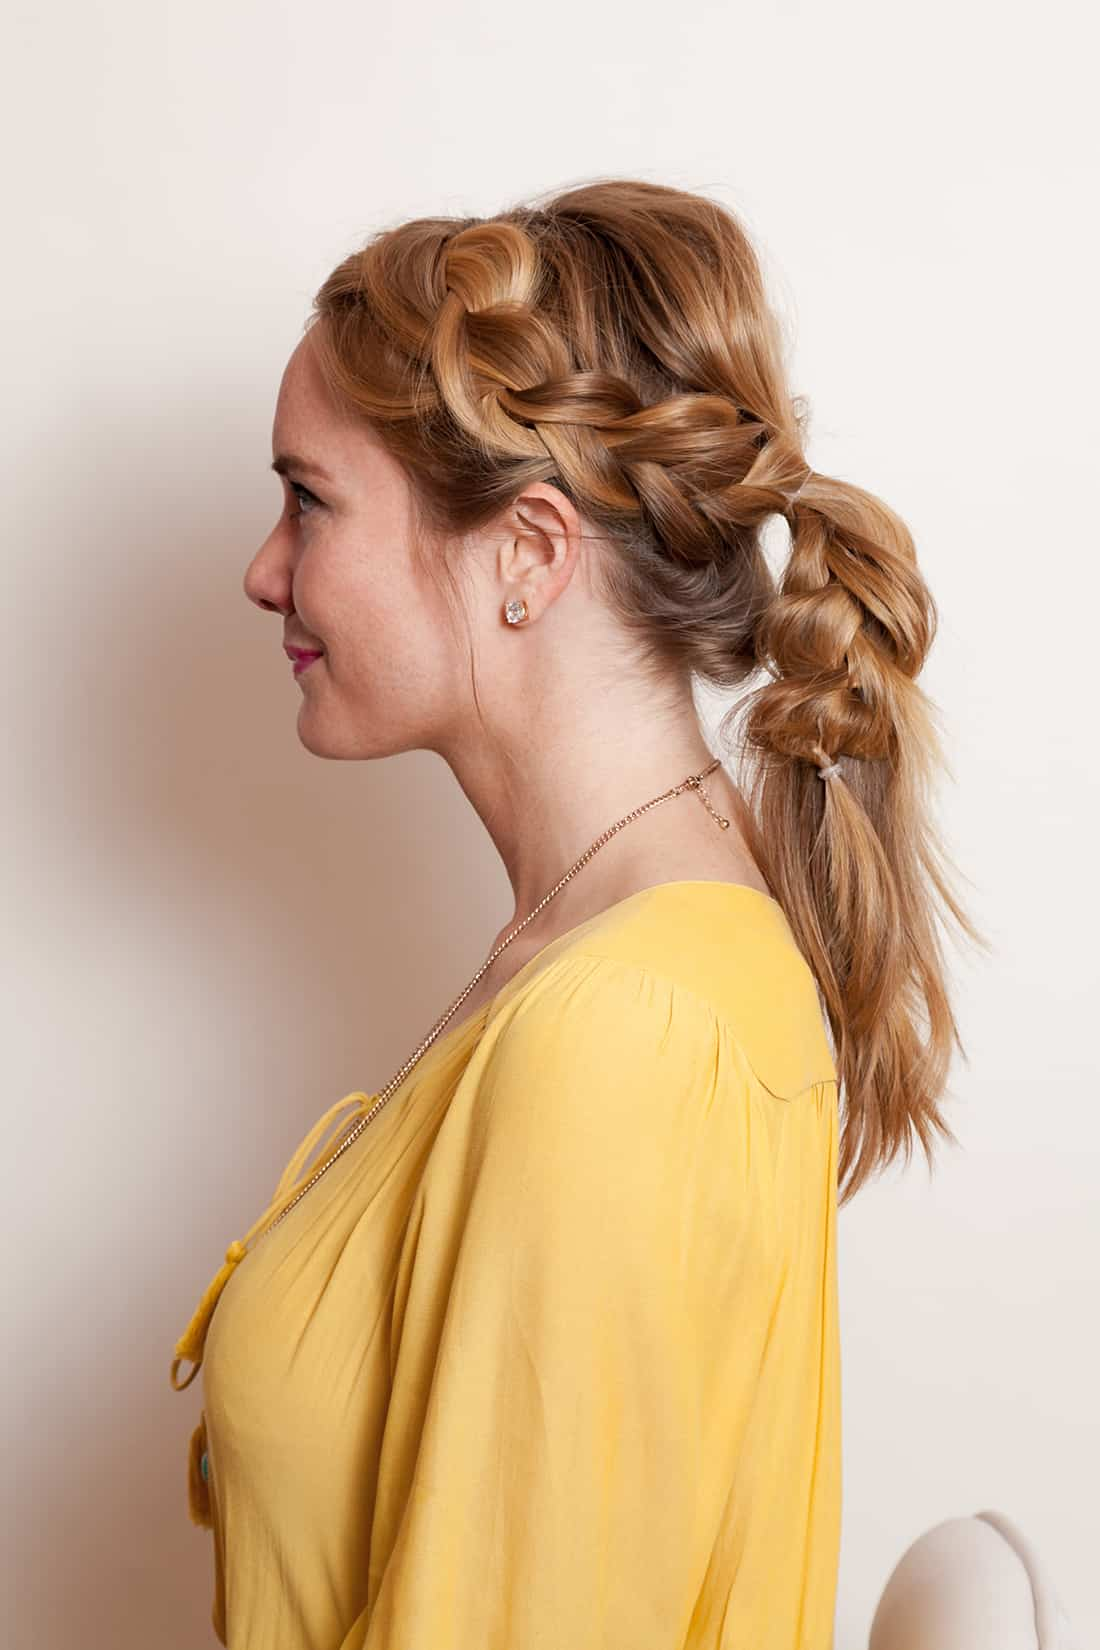 Braided pony in 5 minutes - 11 Braided Ponytail Tutorials Perfect for Fall